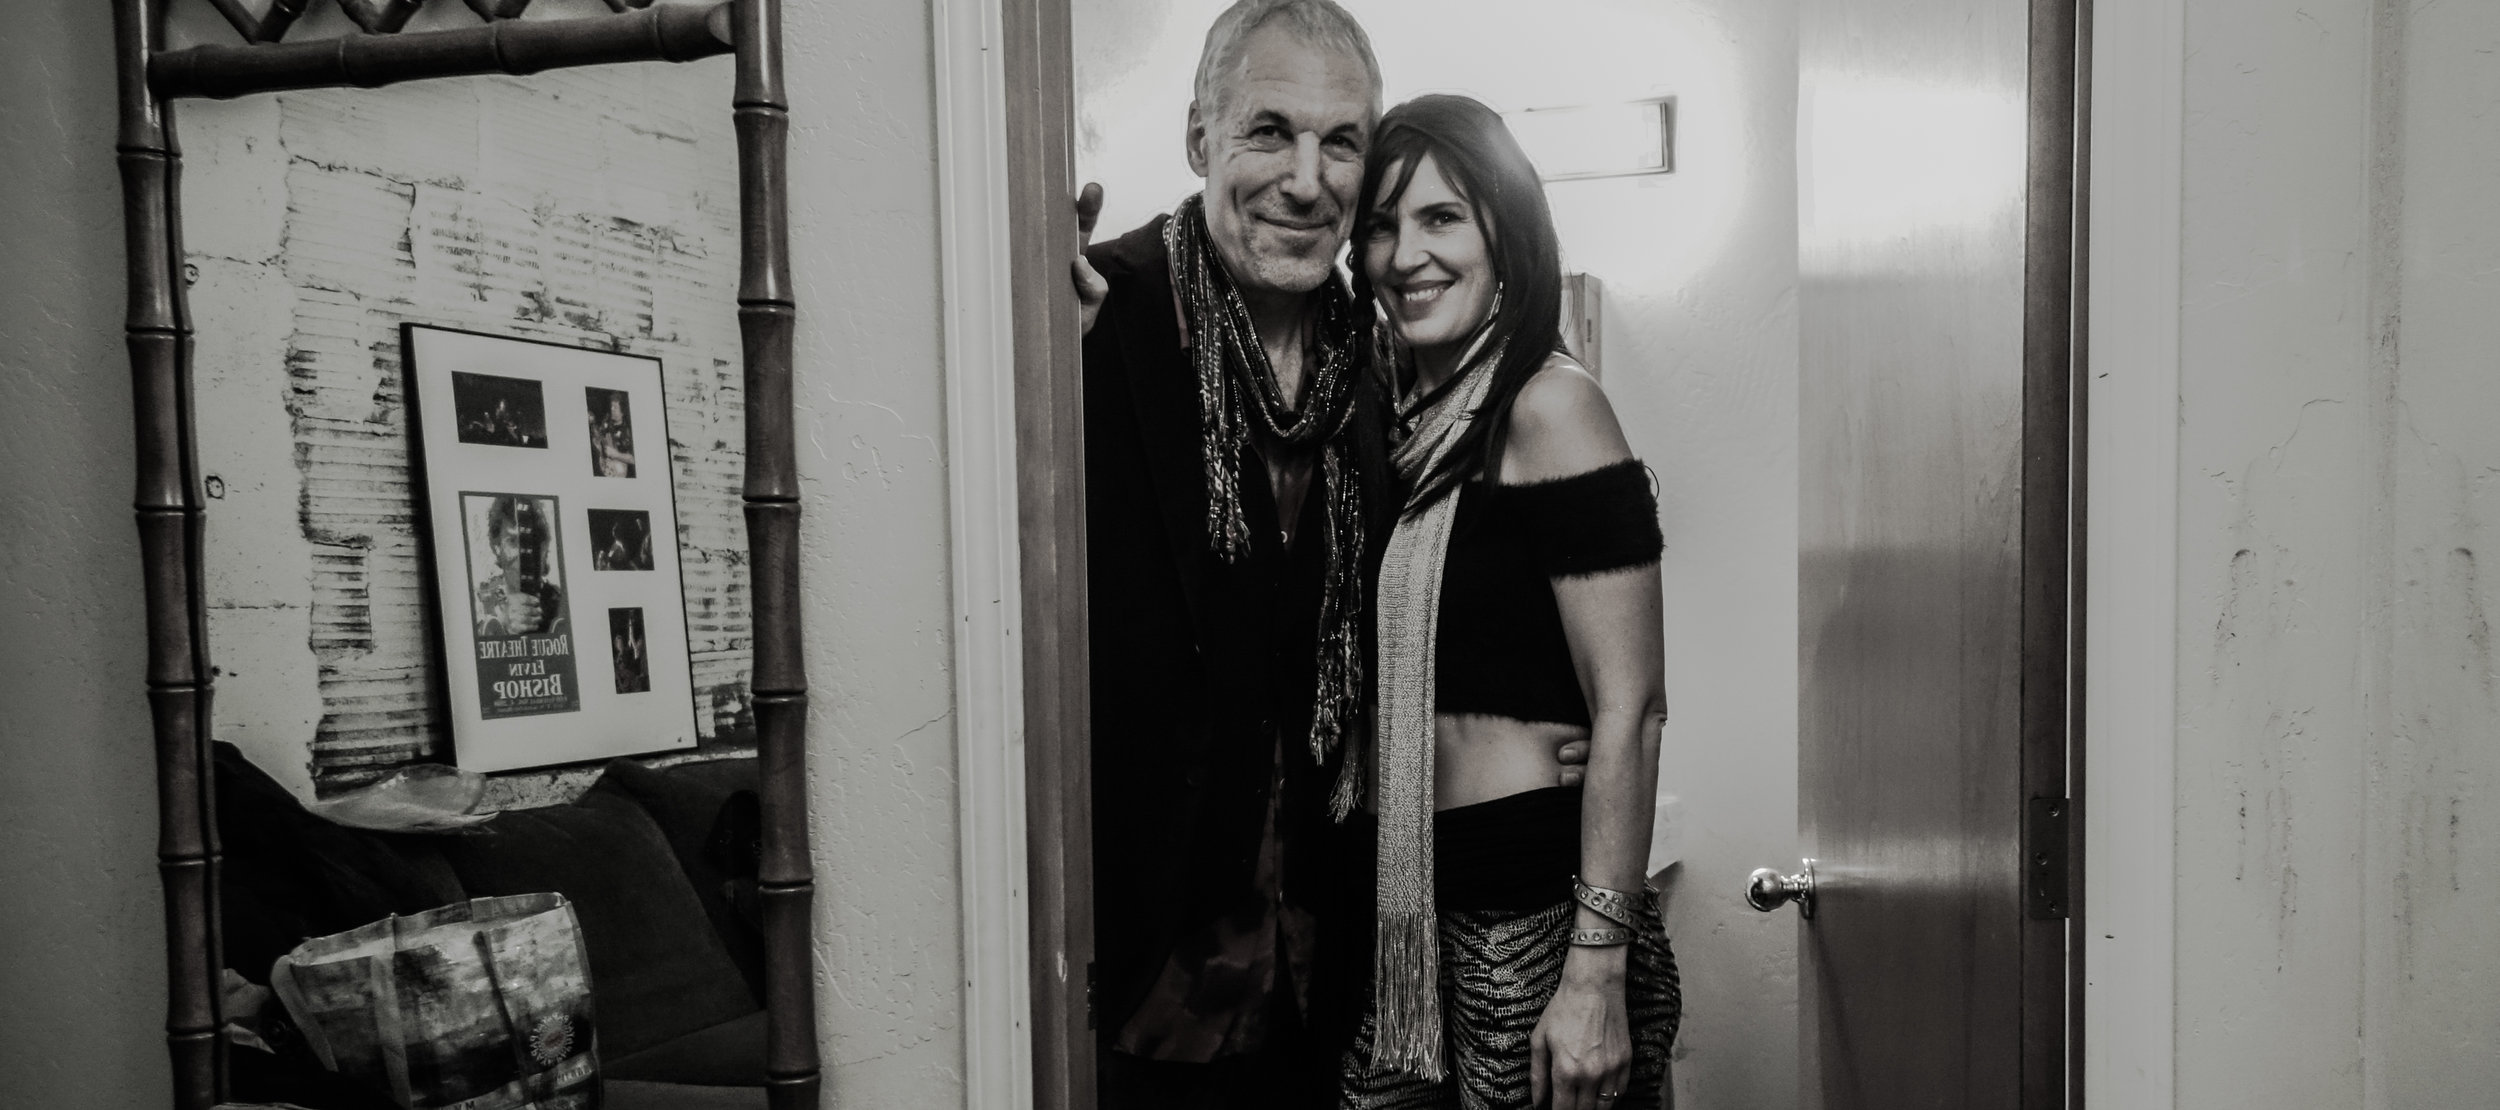 Jeff & Inger ZEPDRIX pre-show backstage at The Rogue Theater